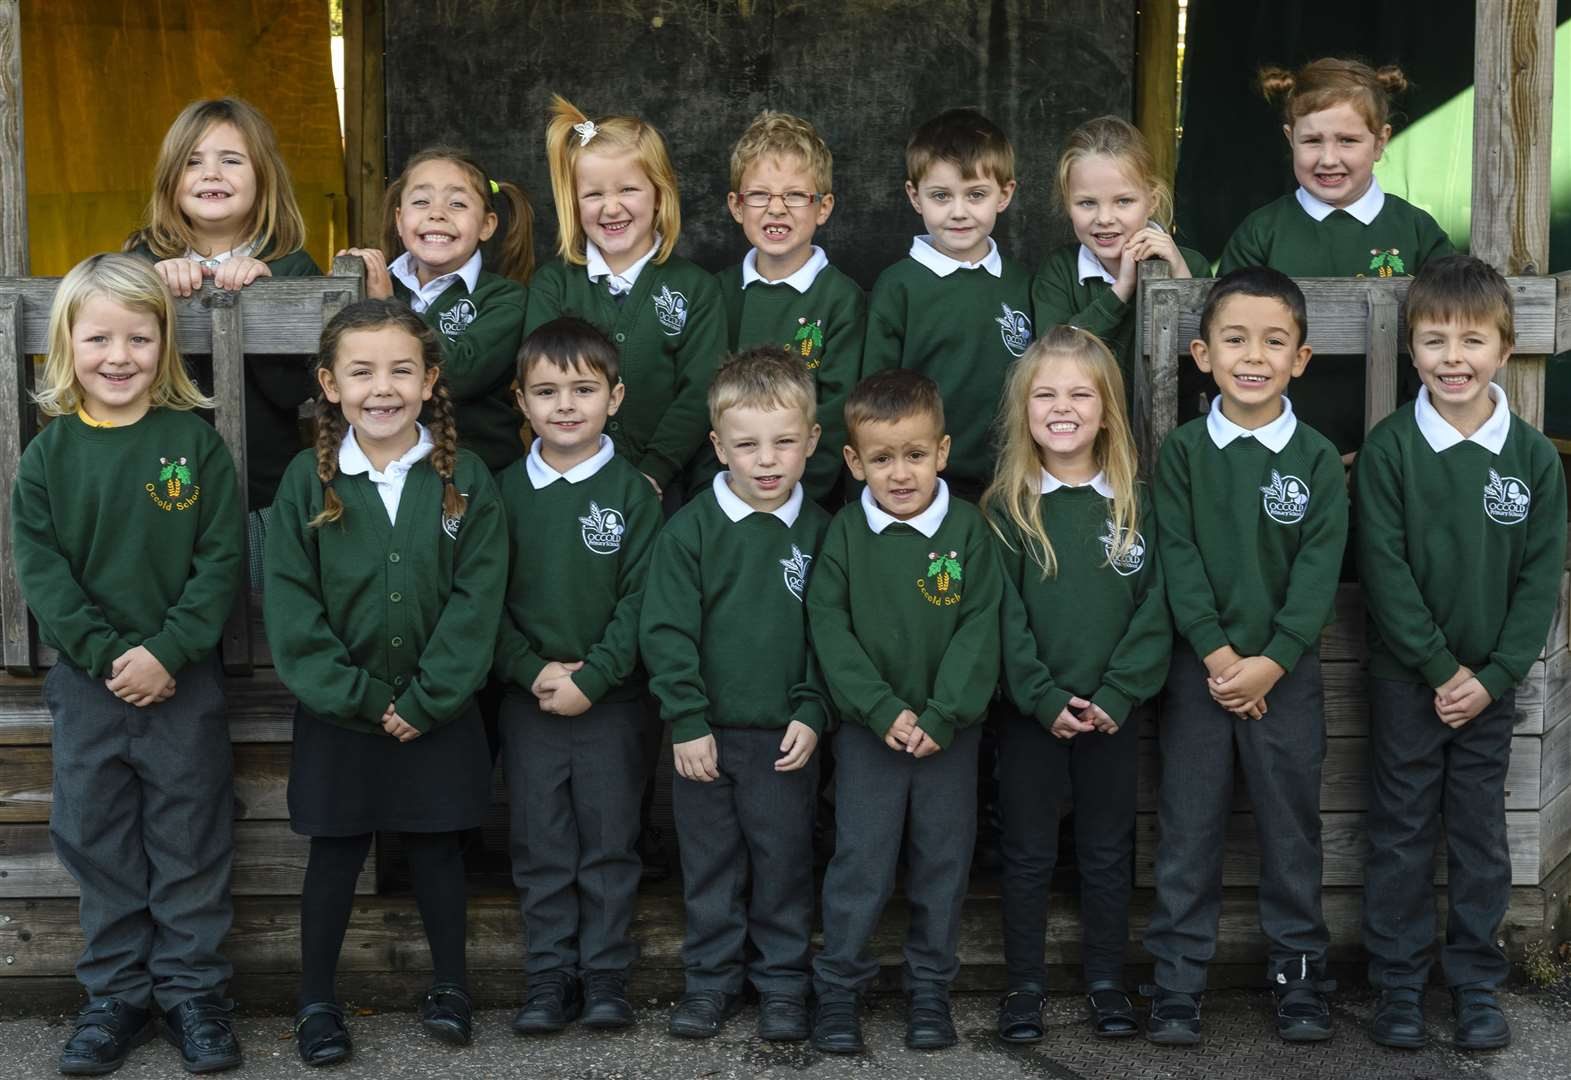 CLASS OF THE WEEK: Occold Primary School